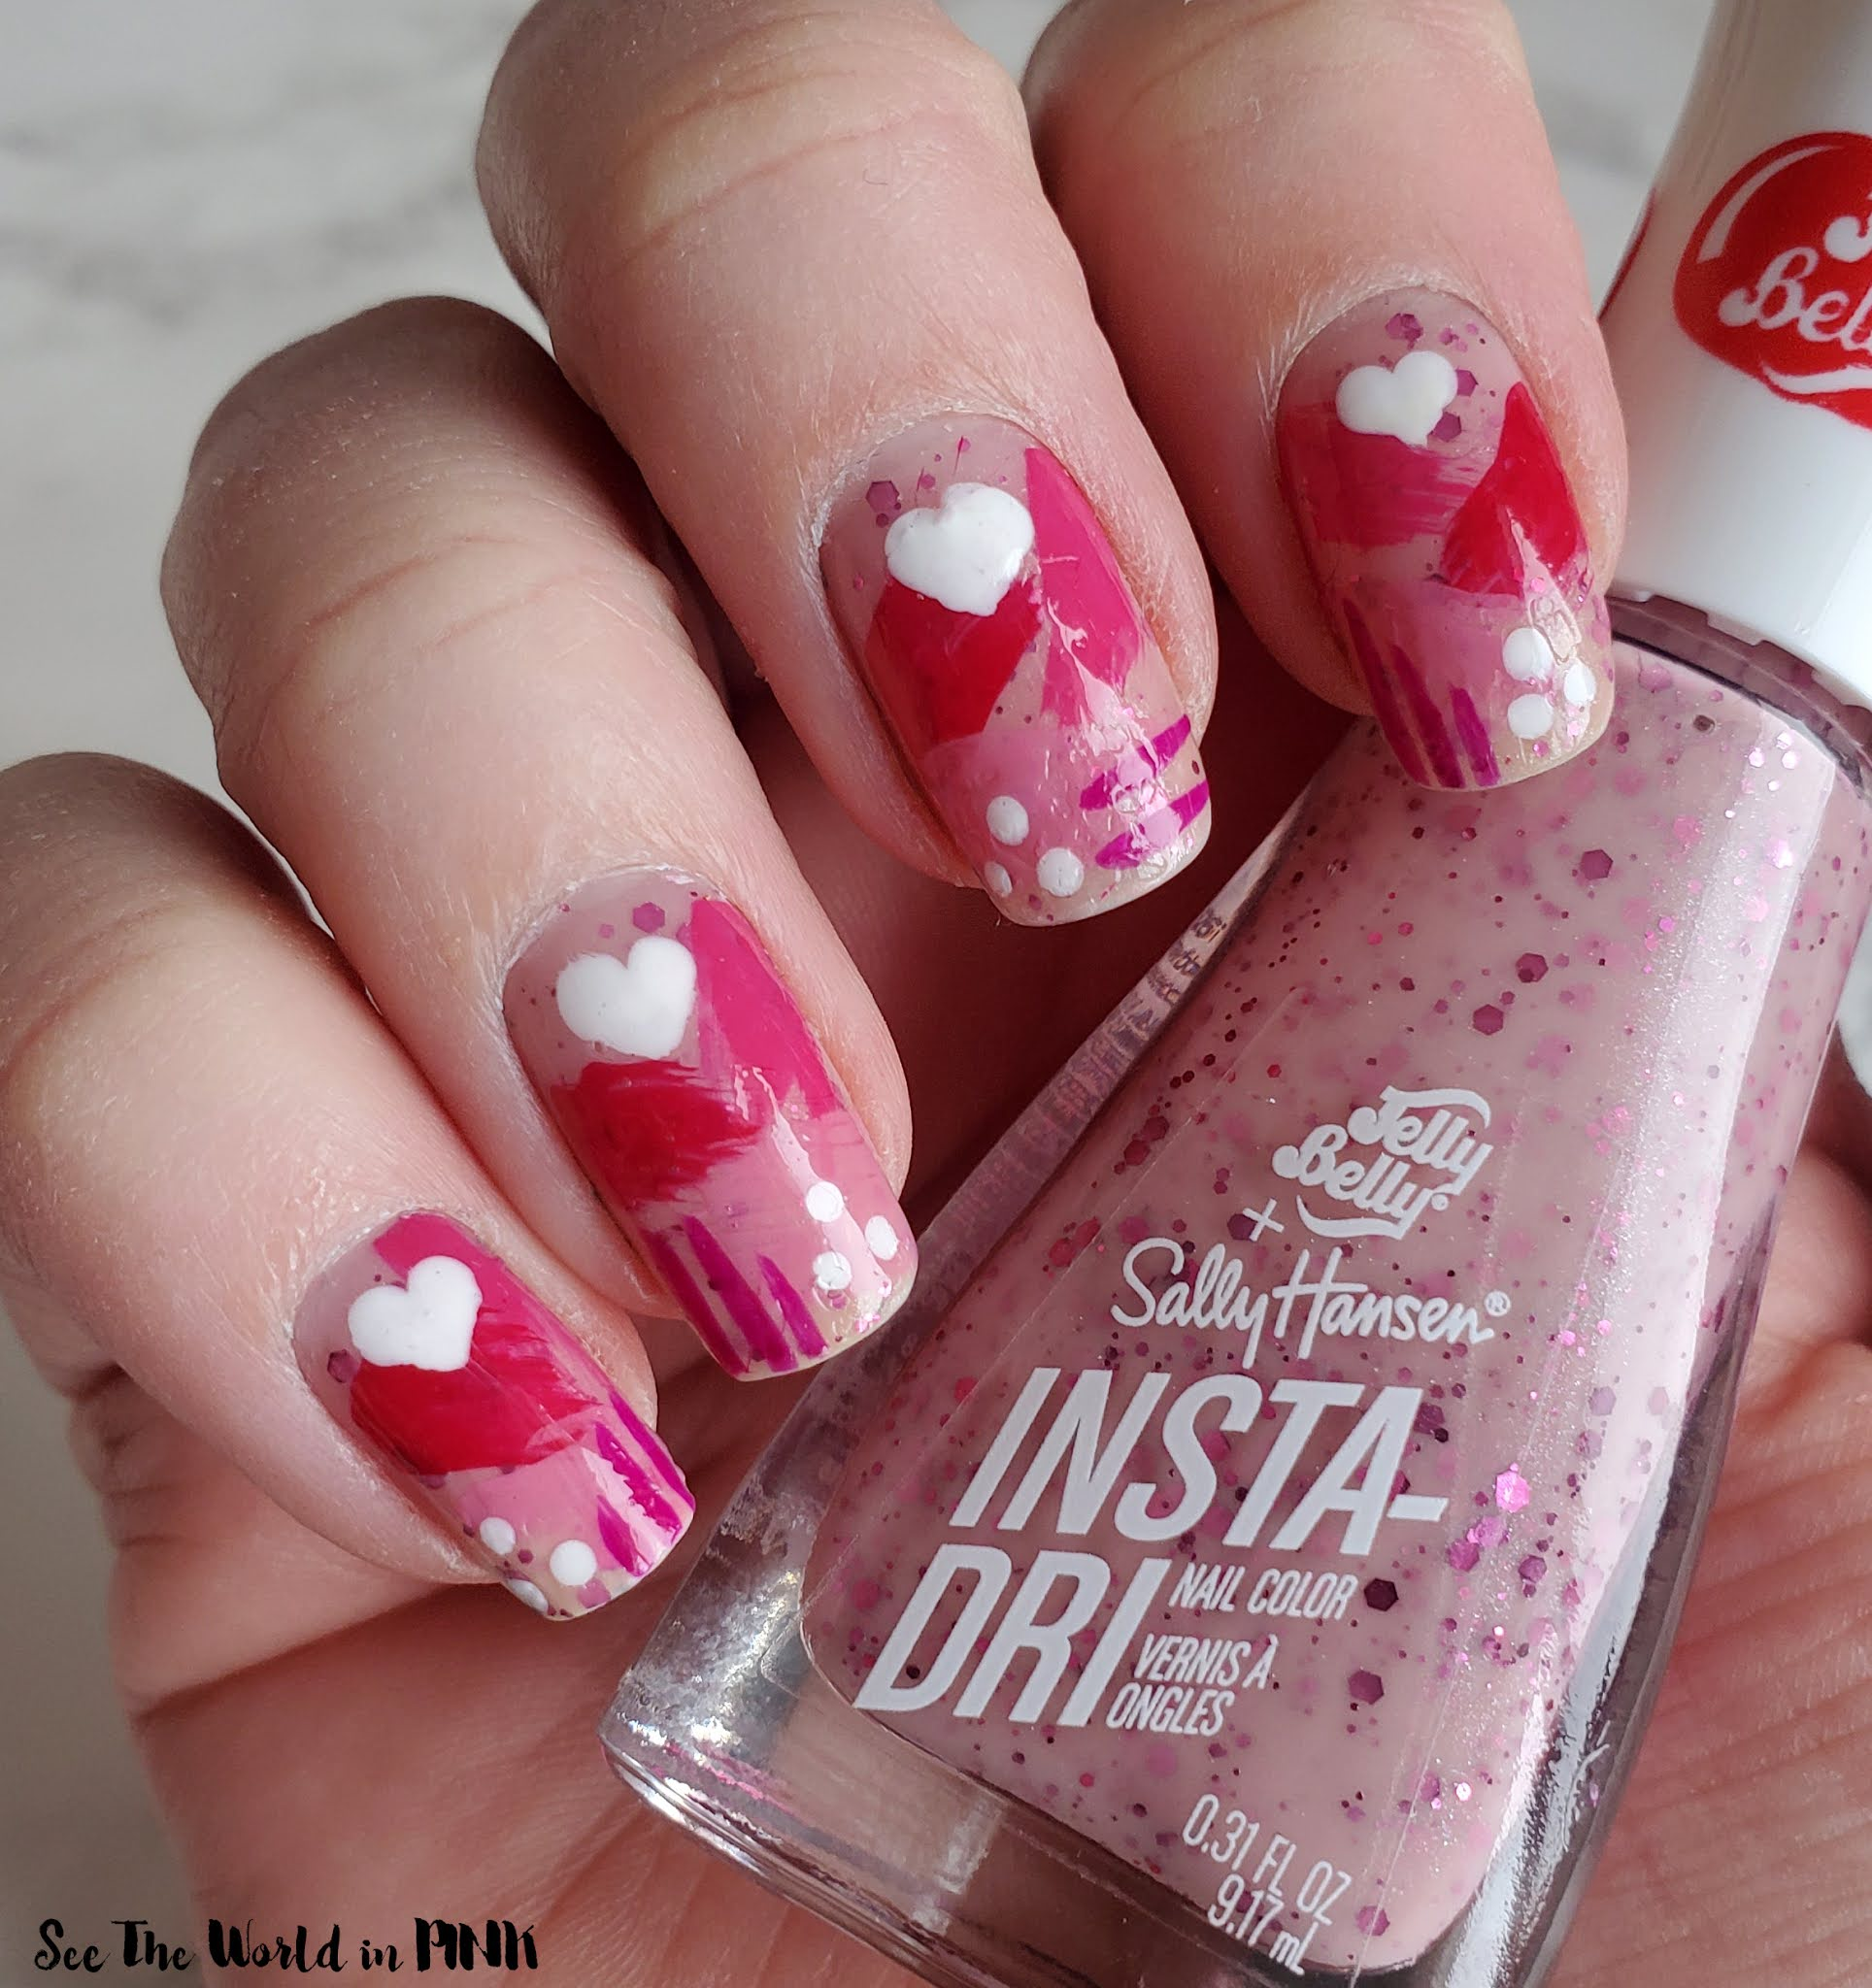 Manicure Monday - Abstract Pink Heart Nails